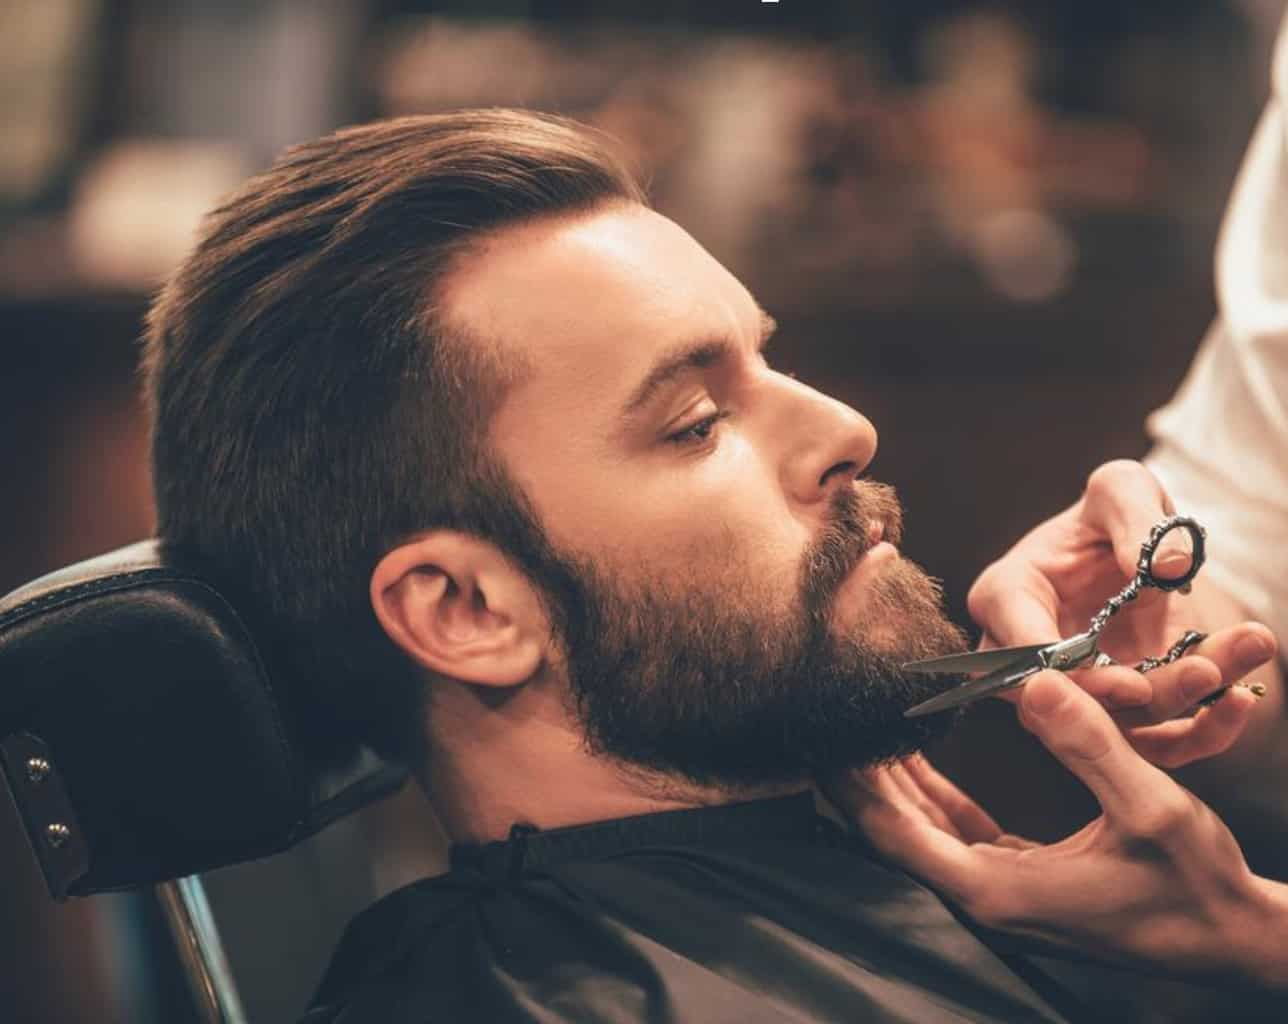 Pleasant 5 Tips To Keep A Well Groomed Beard The Malestrom Natural Hairstyles Runnerswayorg